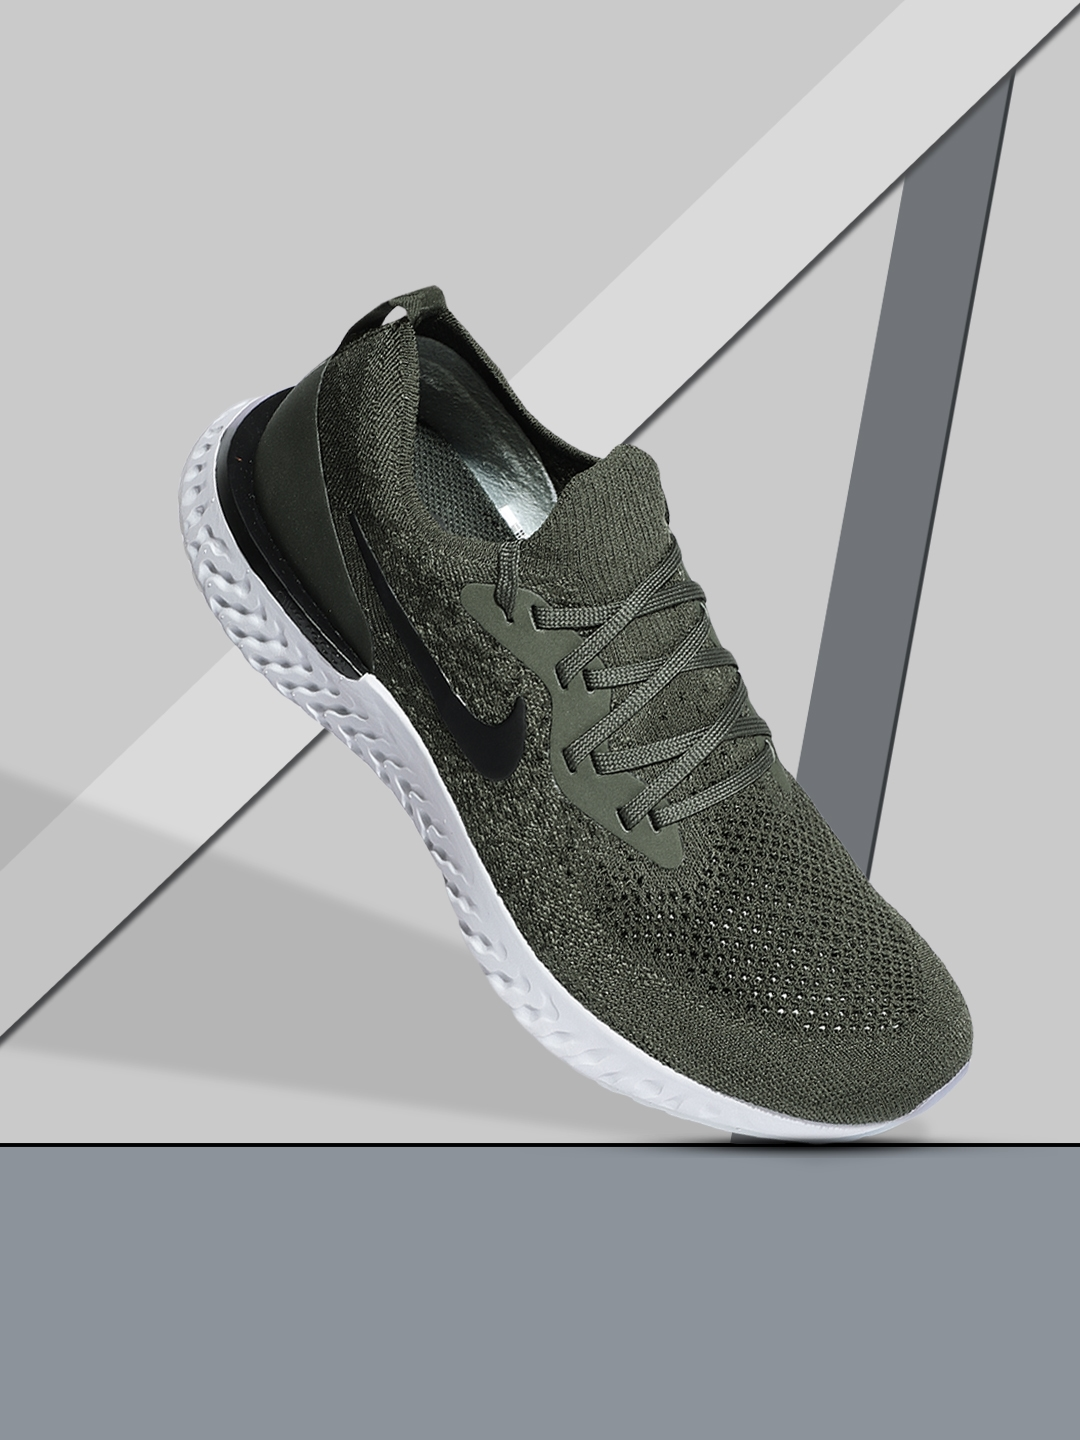 best loved ba1d6 9ea6a Buy Nike Men Olive Green Epic React Flyknit Running Shoes - Sports ...